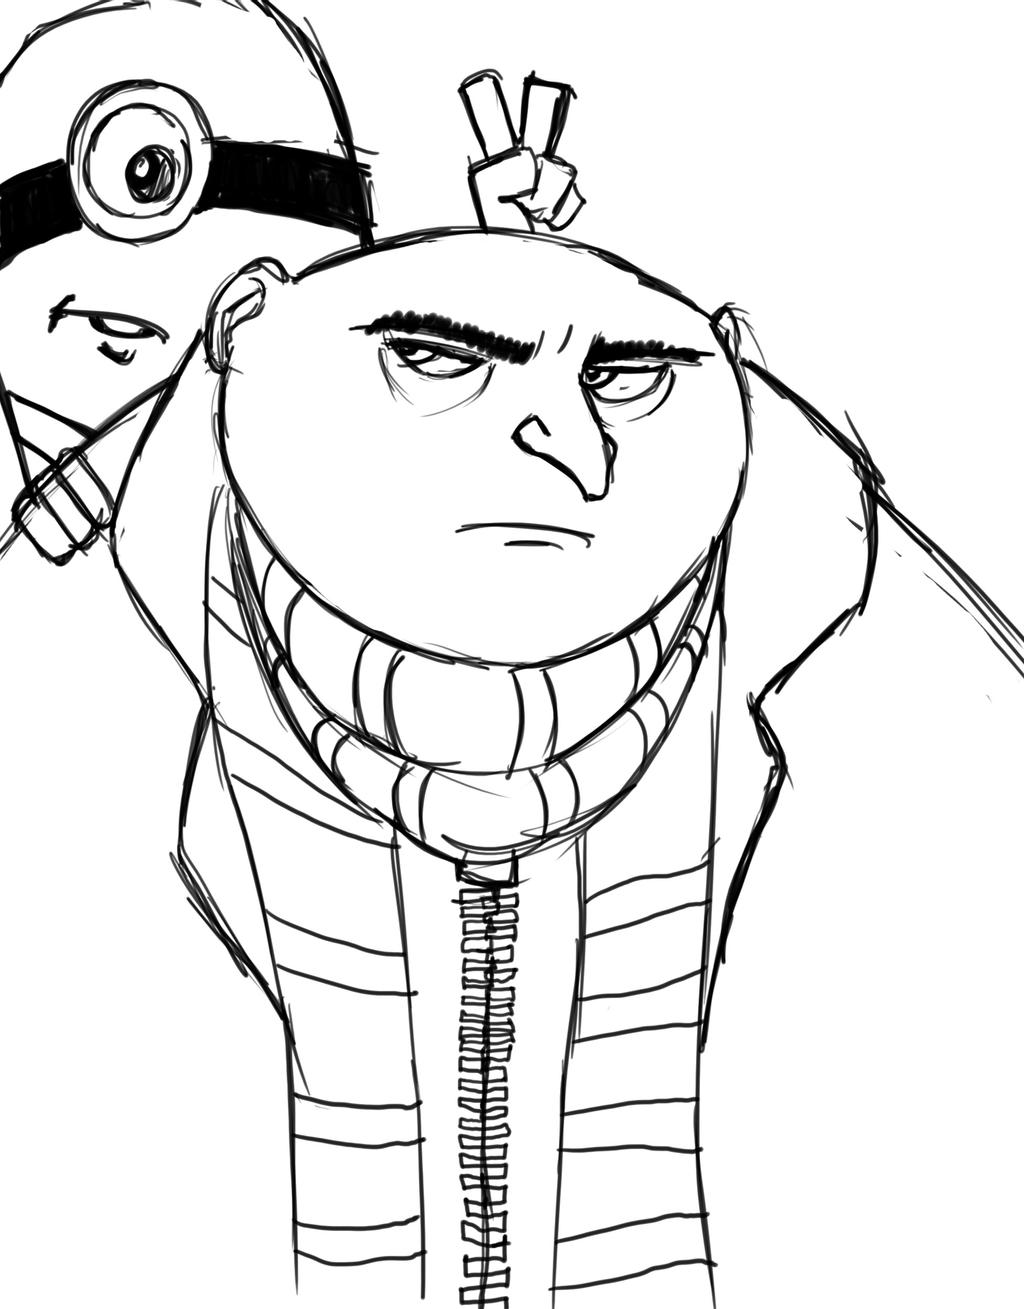 despicable me drawing how to draw gru despicable me drawing me despicable